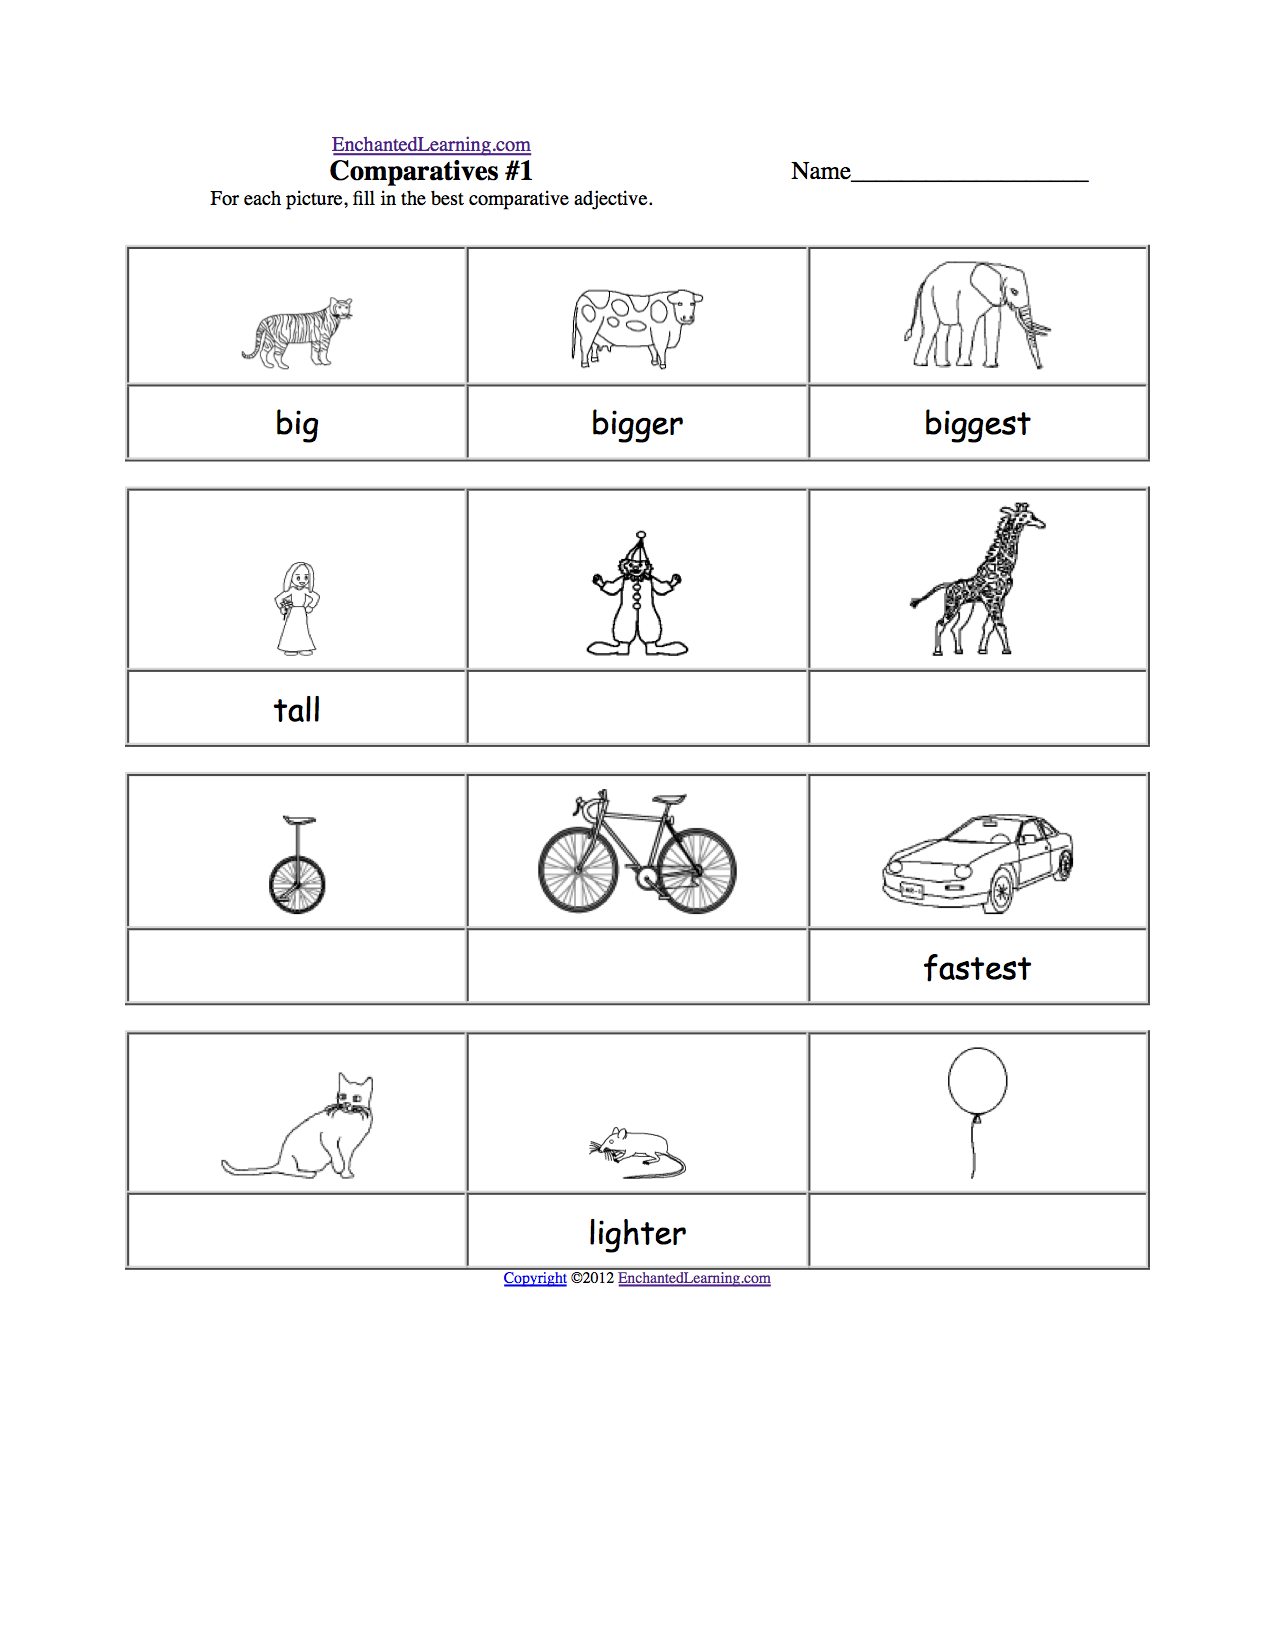 Proatmealus  Sweet Adjective Activities And Worksheets Enchantedlearningcom With Great Multiplying And Dividing Whole Numbers Worksheets Besides Worksheet Grade  Furthermore The Enormous Crocodile Worksheets With Enchanting Transformation Maths Worksheets Also Number Name Worksheet In Addition Ratio And Fraction Worksheets And Addition Property Worksheets As Well As Dictionary Worksheets For Nd Grade Additionally Pythagoras Worksheets From Enchantedlearningcom With Proatmealus  Great Adjective Activities And Worksheets Enchantedlearningcom With Enchanting Multiplying And Dividing Whole Numbers Worksheets Besides Worksheet Grade  Furthermore The Enormous Crocodile Worksheets And Sweet Transformation Maths Worksheets Also Number Name Worksheet In Addition Ratio And Fraction Worksheets From Enchantedlearningcom